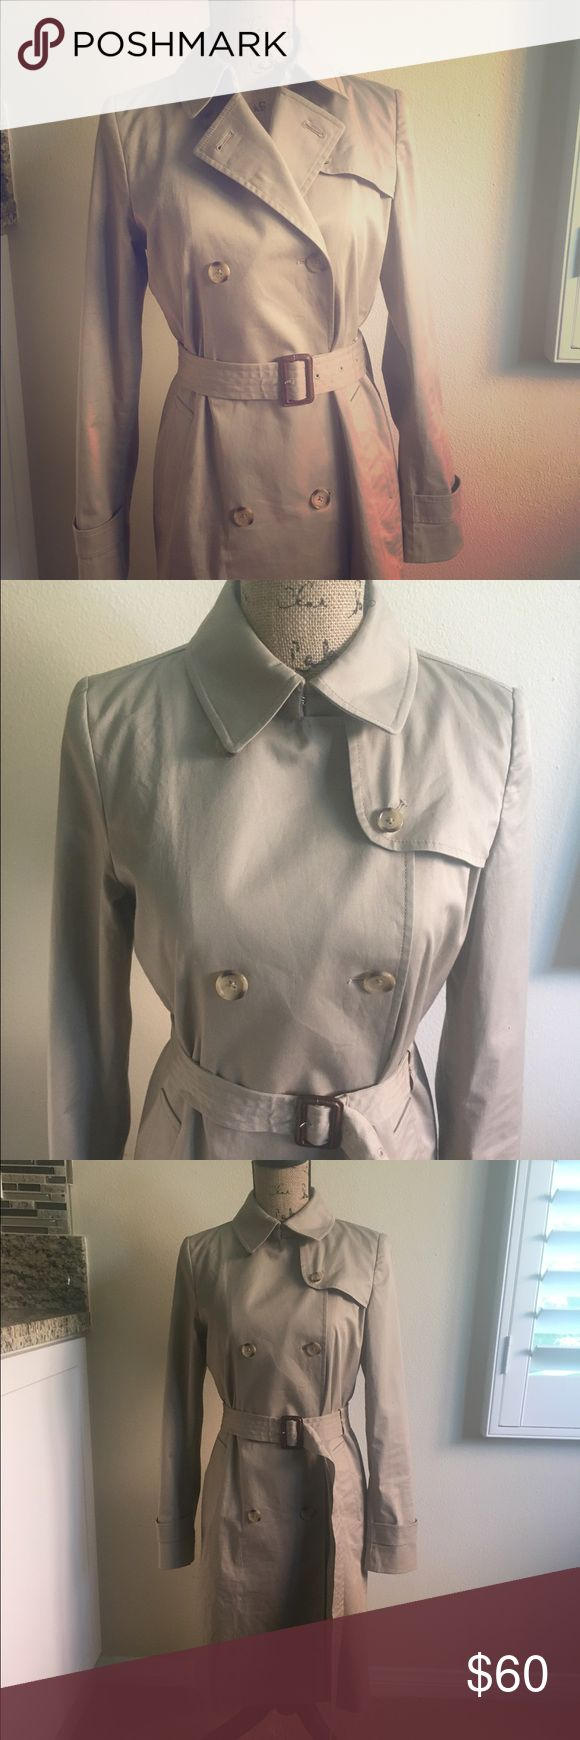 Versatile Tan trench coat Worn once! Excellent condition! Front buttons and adjusts in many ways. Length to the knee. Uniqlo Jackets & Coats Trench Coats